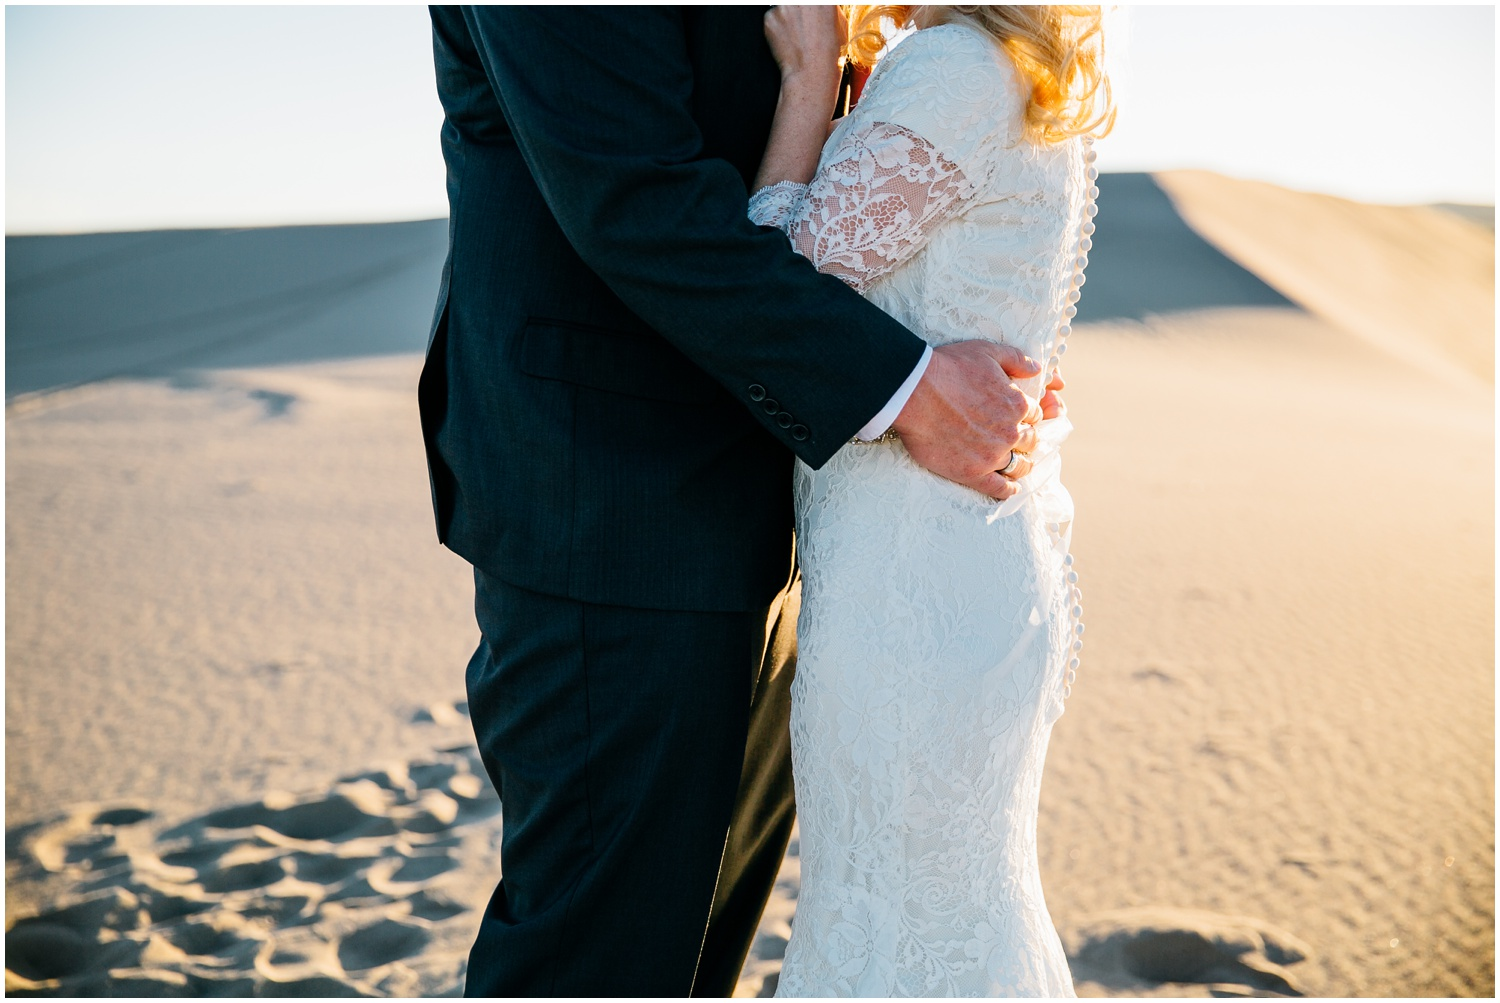 saint-anthony-sand-dunes-bridals-idaho-engagements-colorado-wyoming-wedding-photographer_0736.jpg